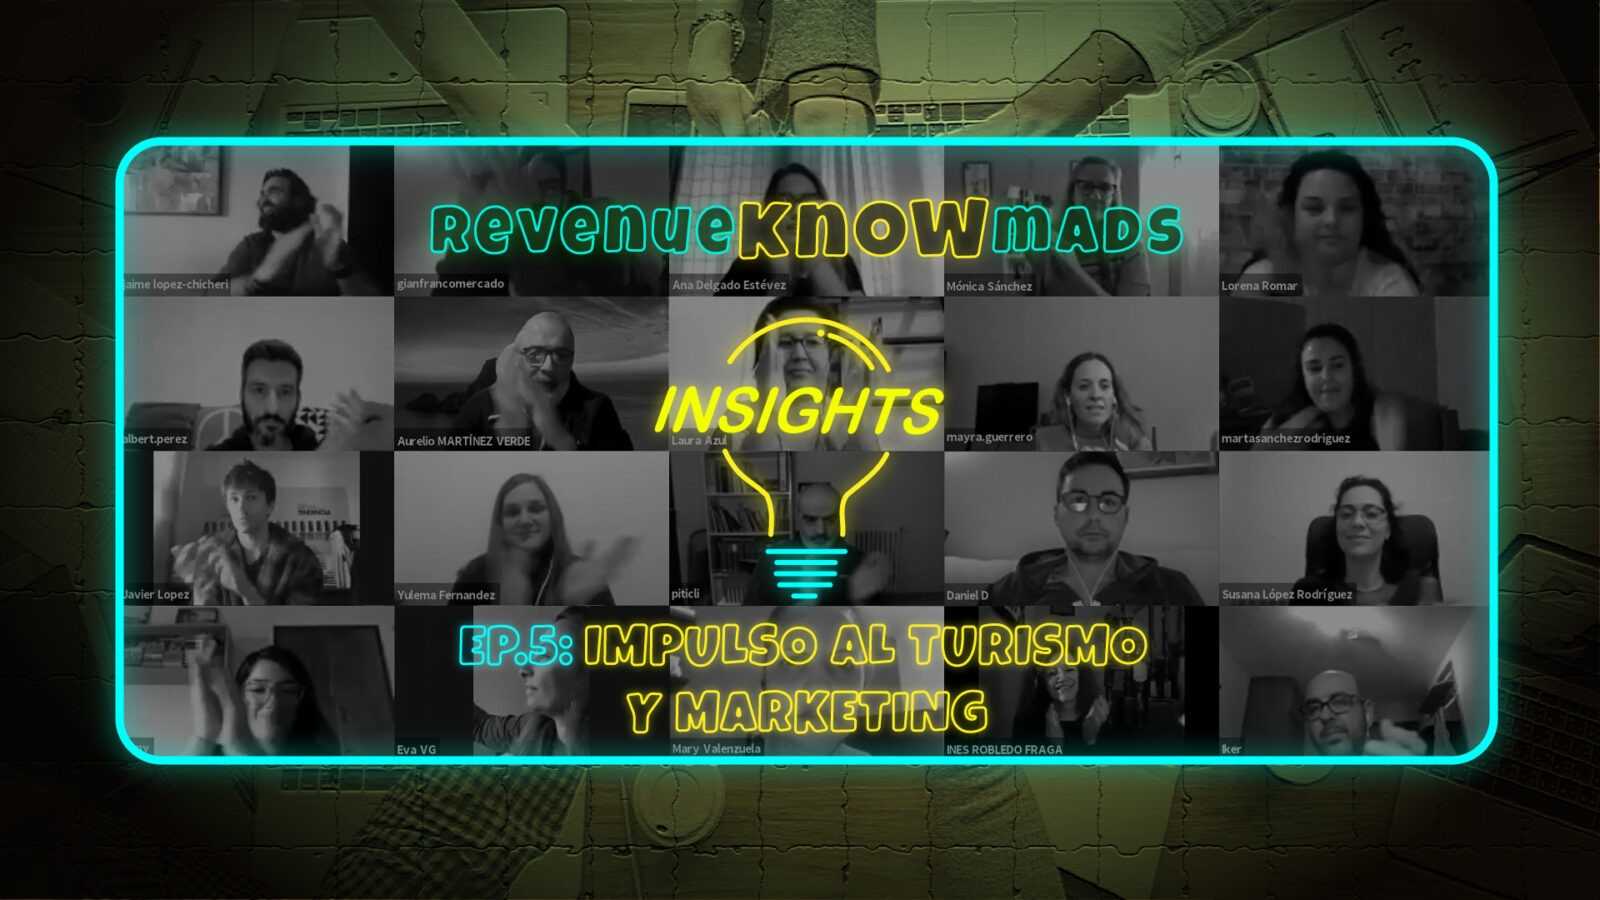 RevenueKnowmads Insights - Ep.5